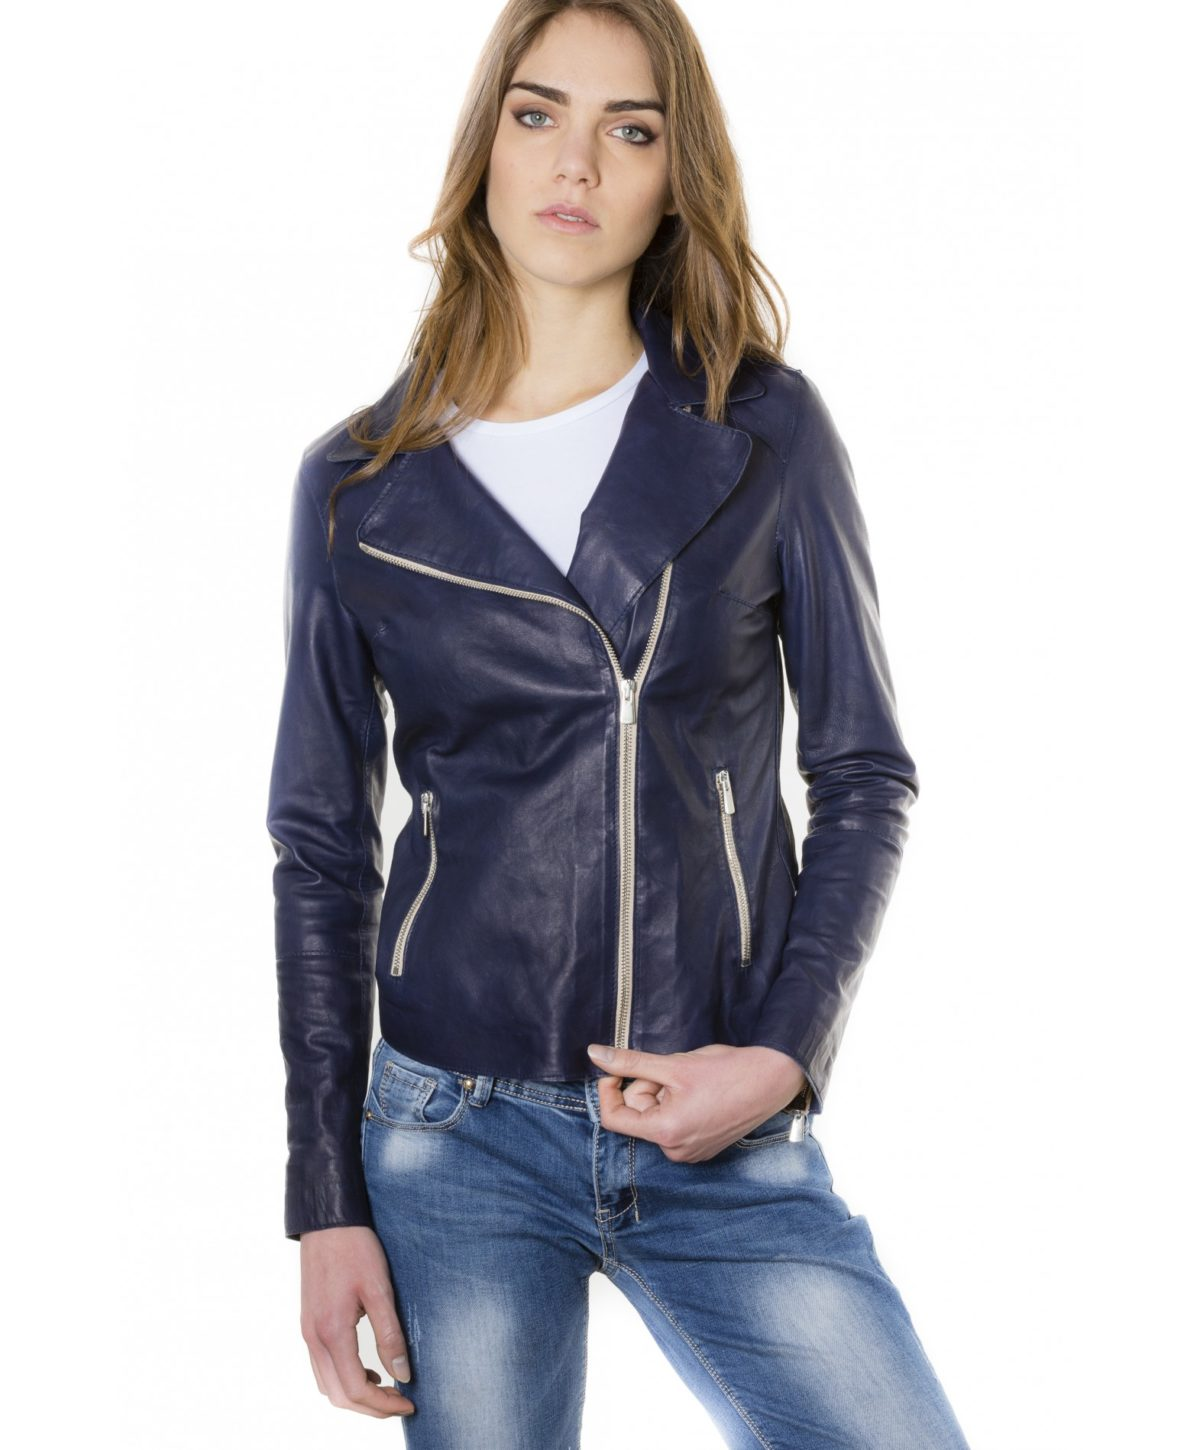 elis-blue-color-lamb-leather-jacket-vintage-effect